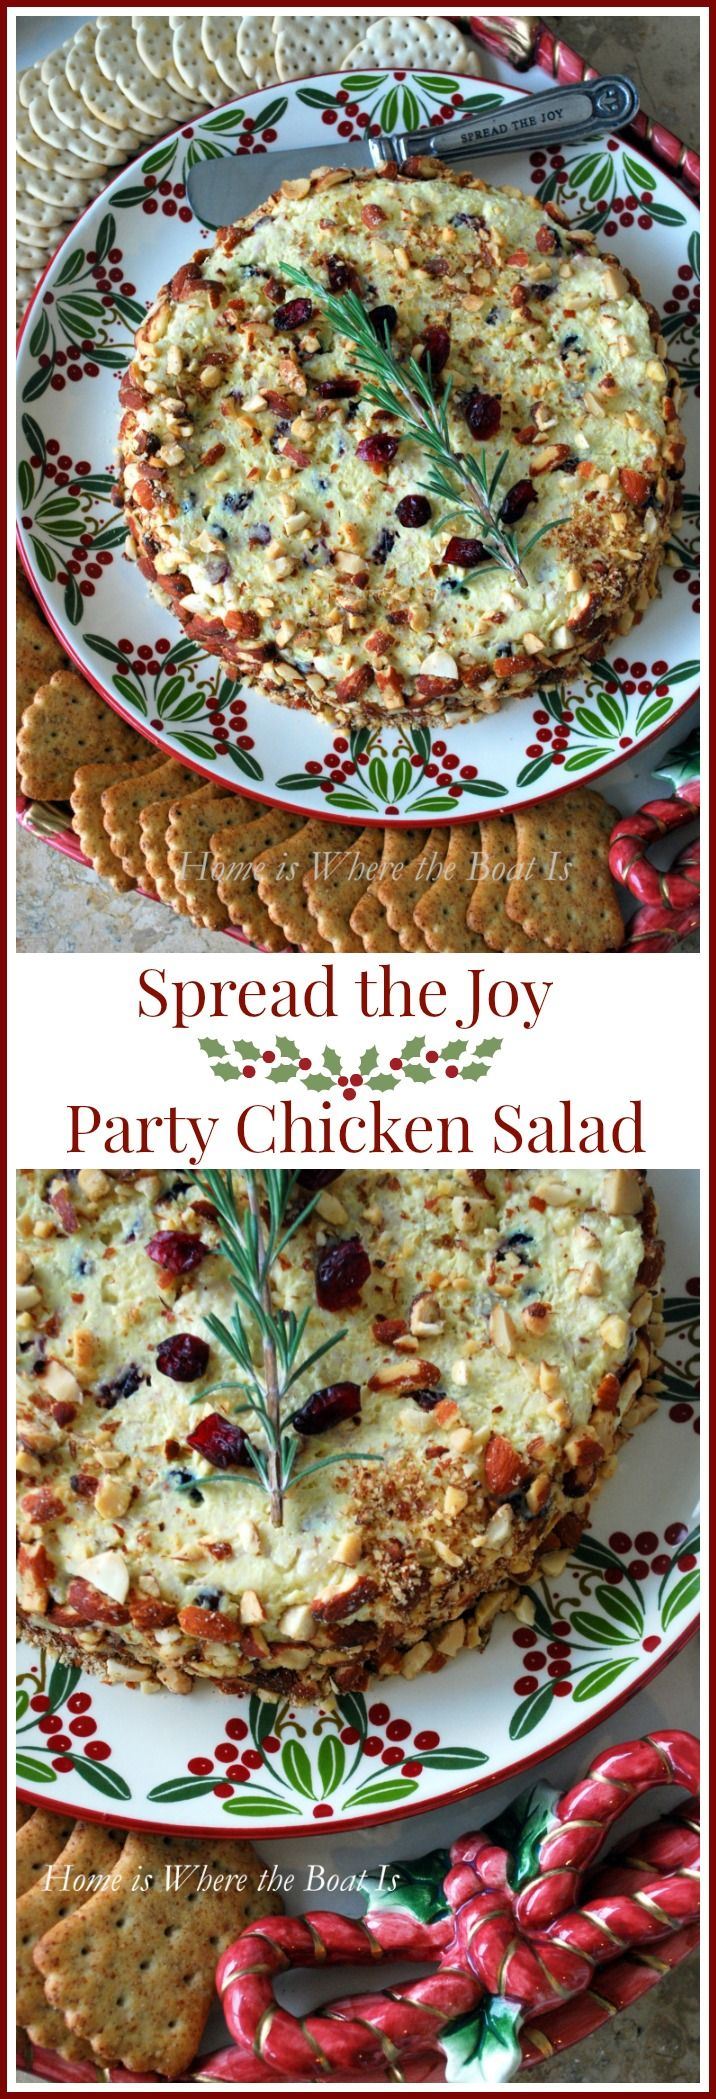 Make ahead molded and festive chicken salad appetizer for Christmas entertaining via Home is Where the Boat Is #appetizer #Christmas